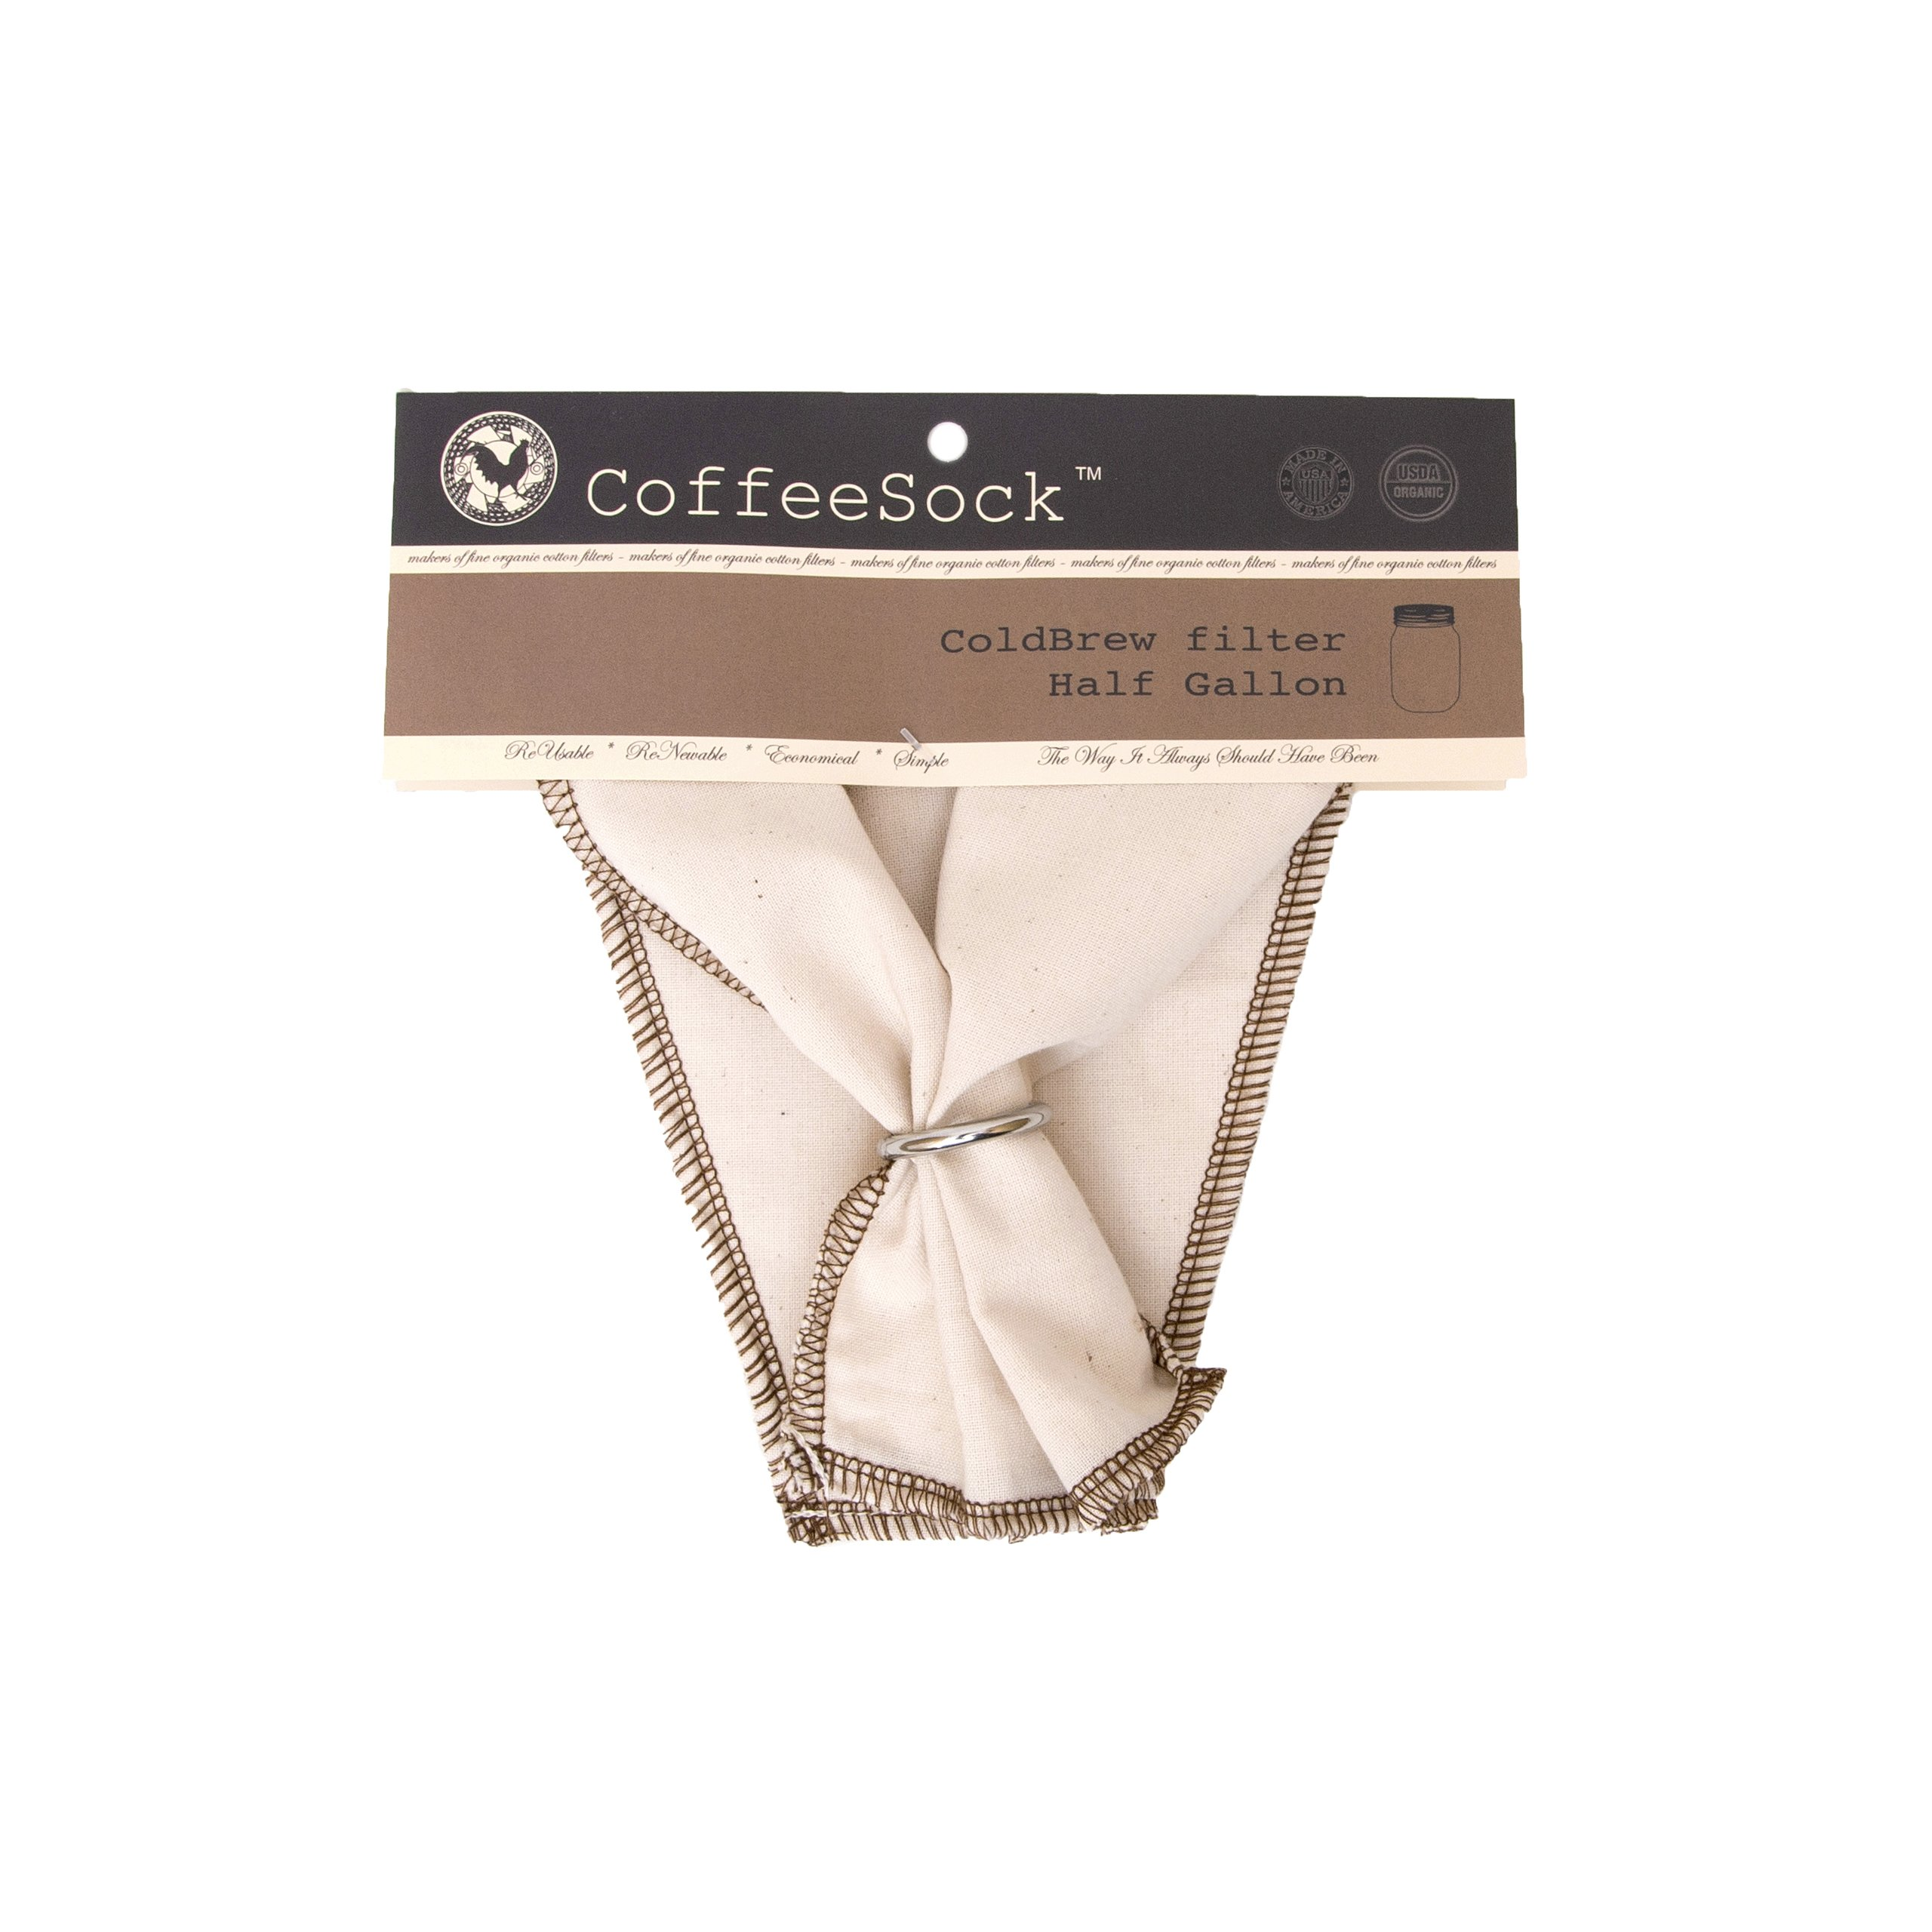 CoffeeSock ColdBrew Filter - GOTS Certified Organic Cotton Reusable Coffee Filter (CB64-01)